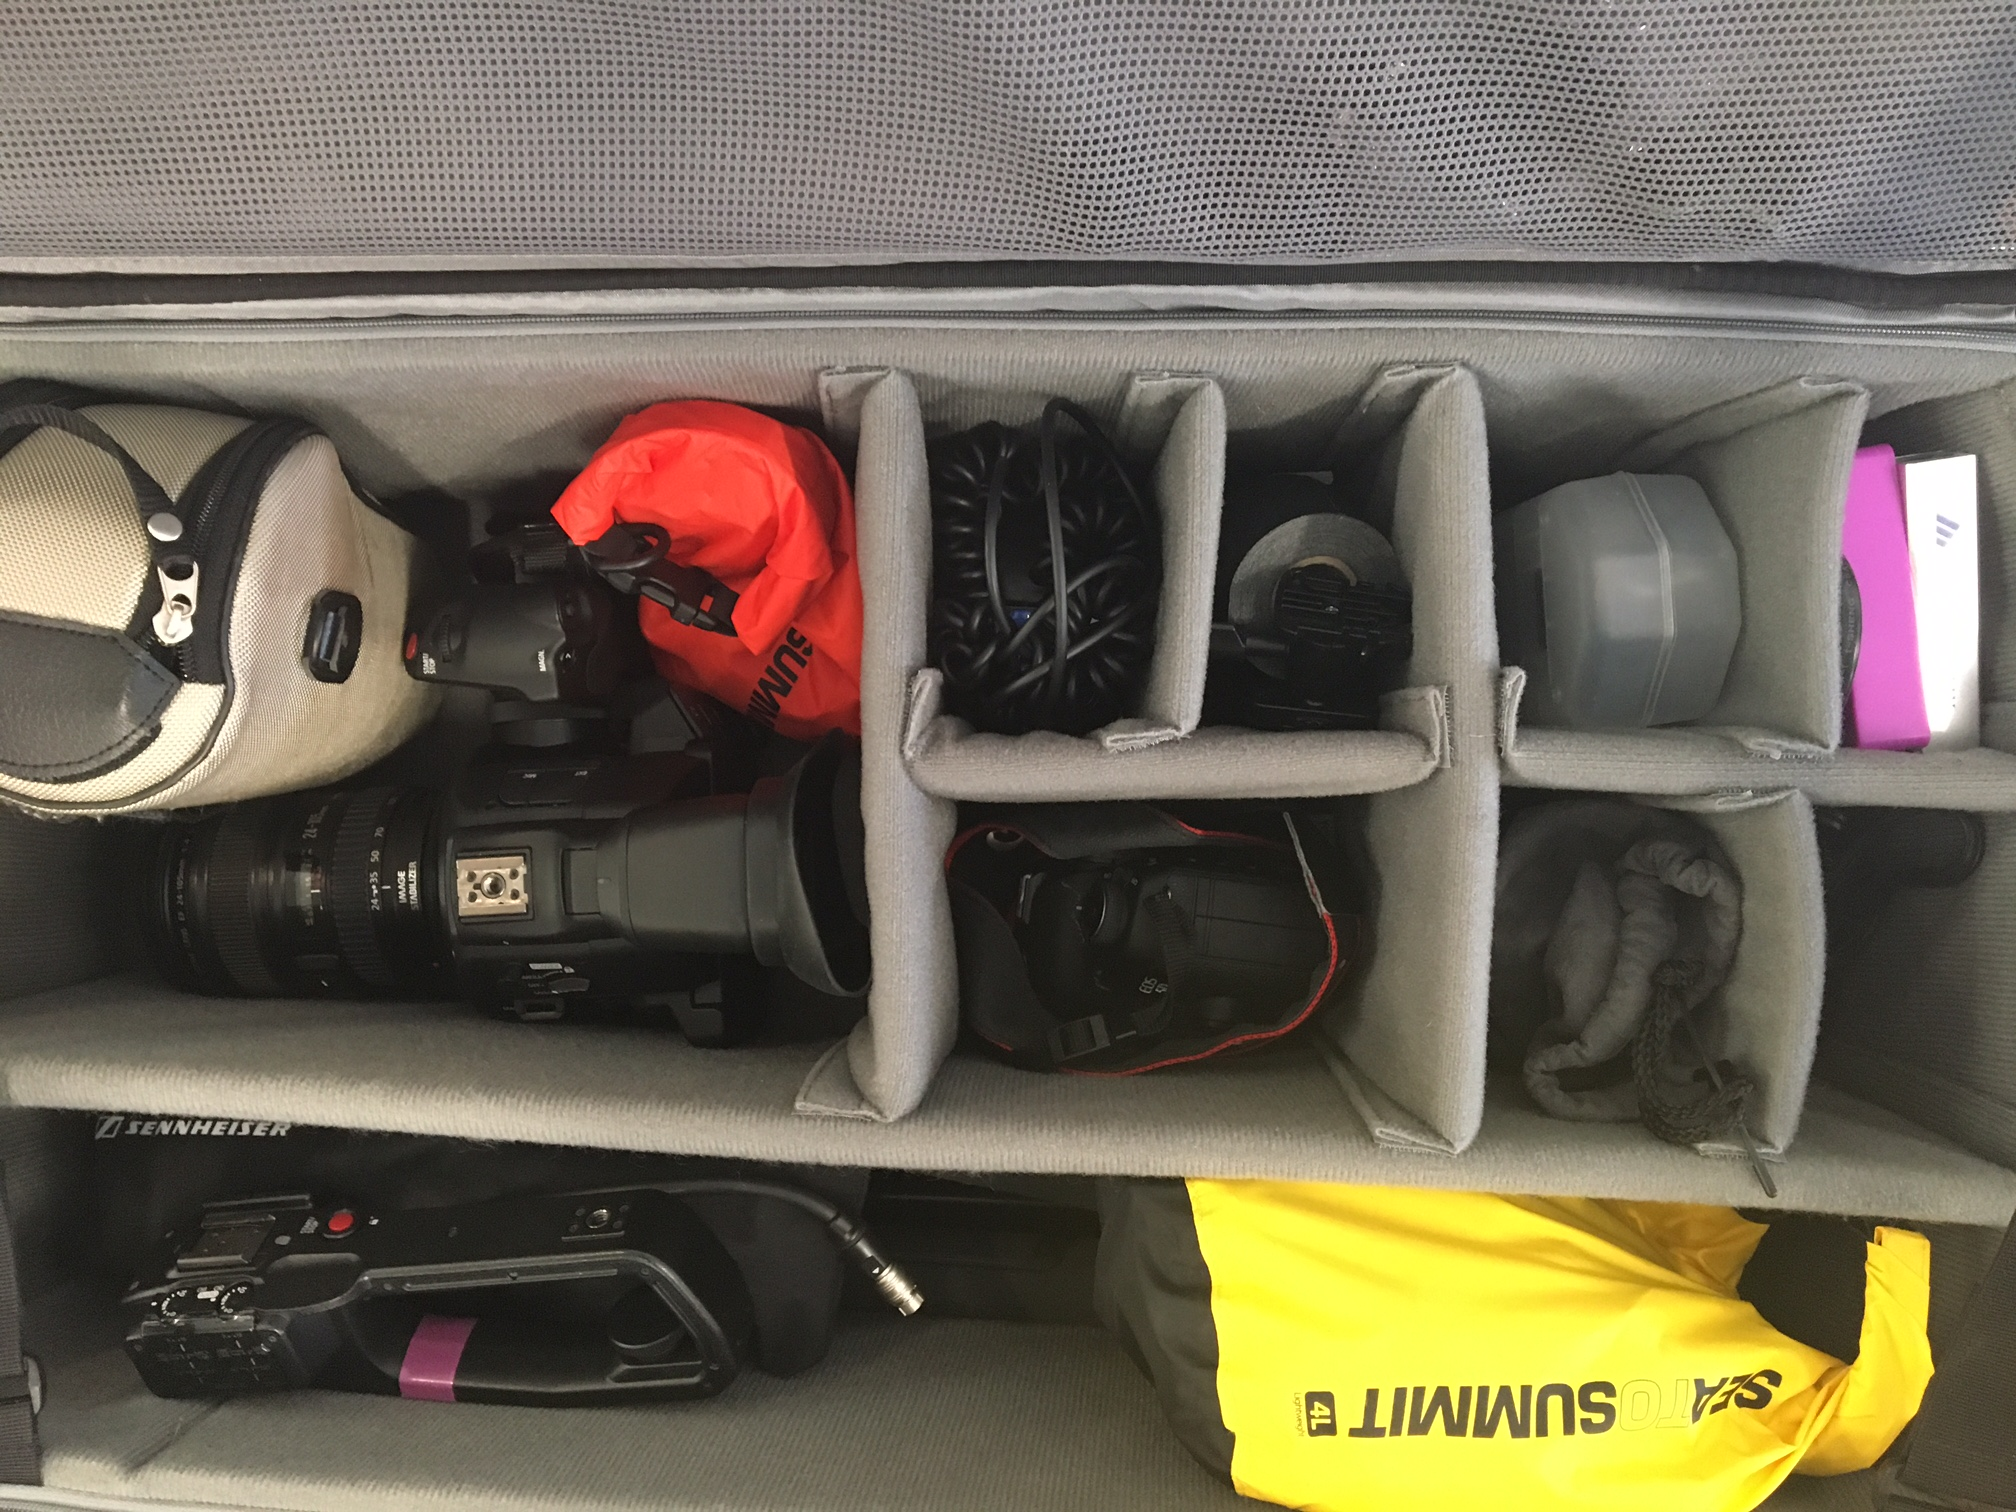 For 360 video production, Brittany likes to keep it simple, using the same tripod she uses for fixed frame video, and a small kit of Keymission accessories. Here's a glimpse of her gear bag.